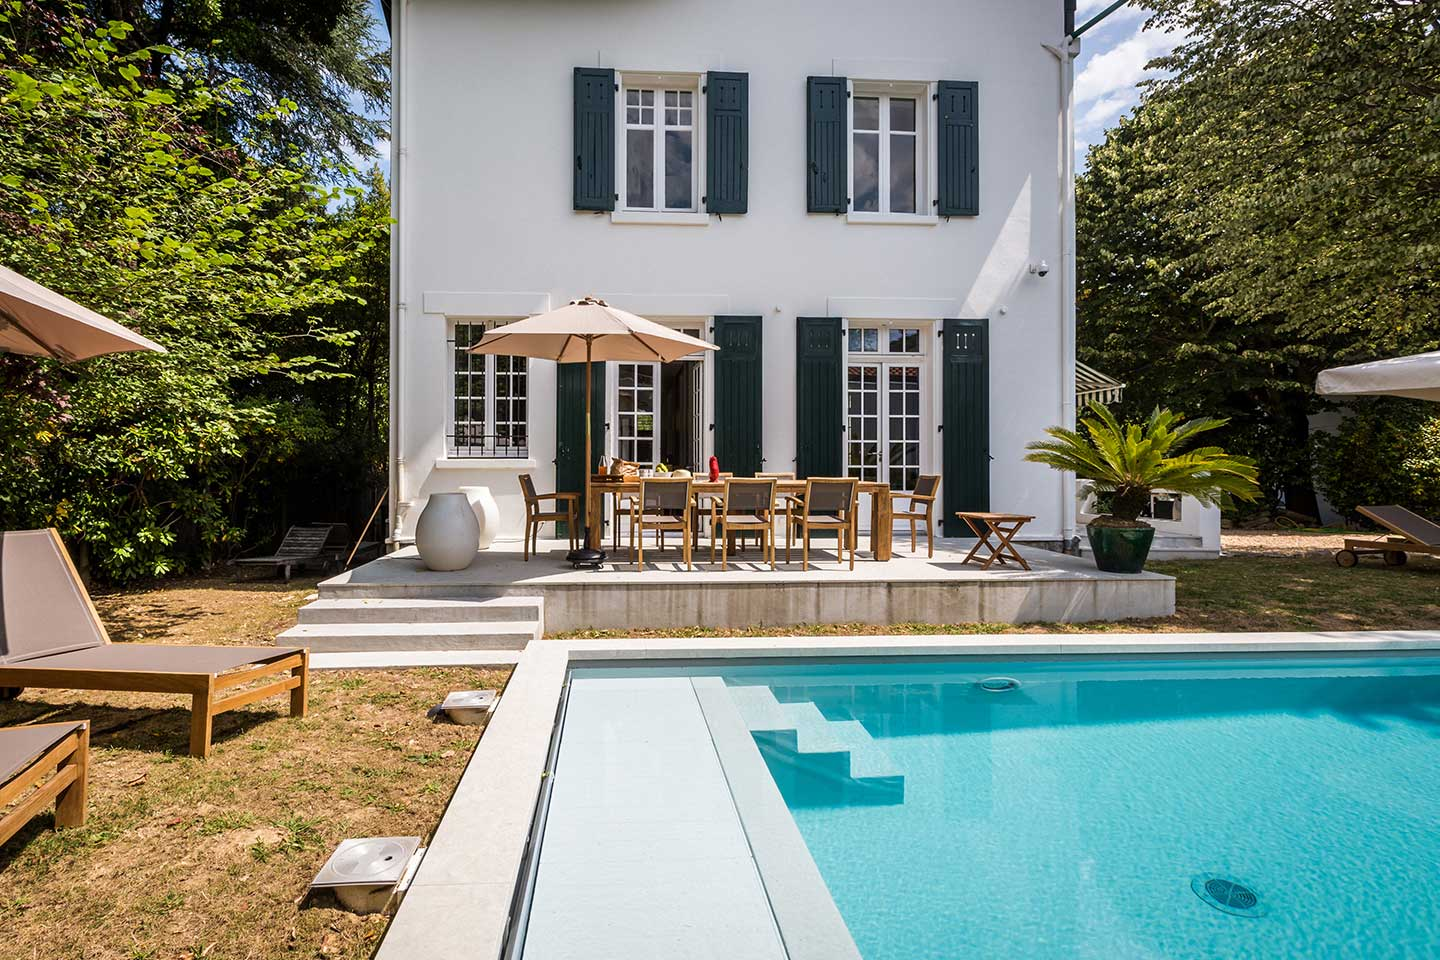 18 Location Biarritz ELEGANCE